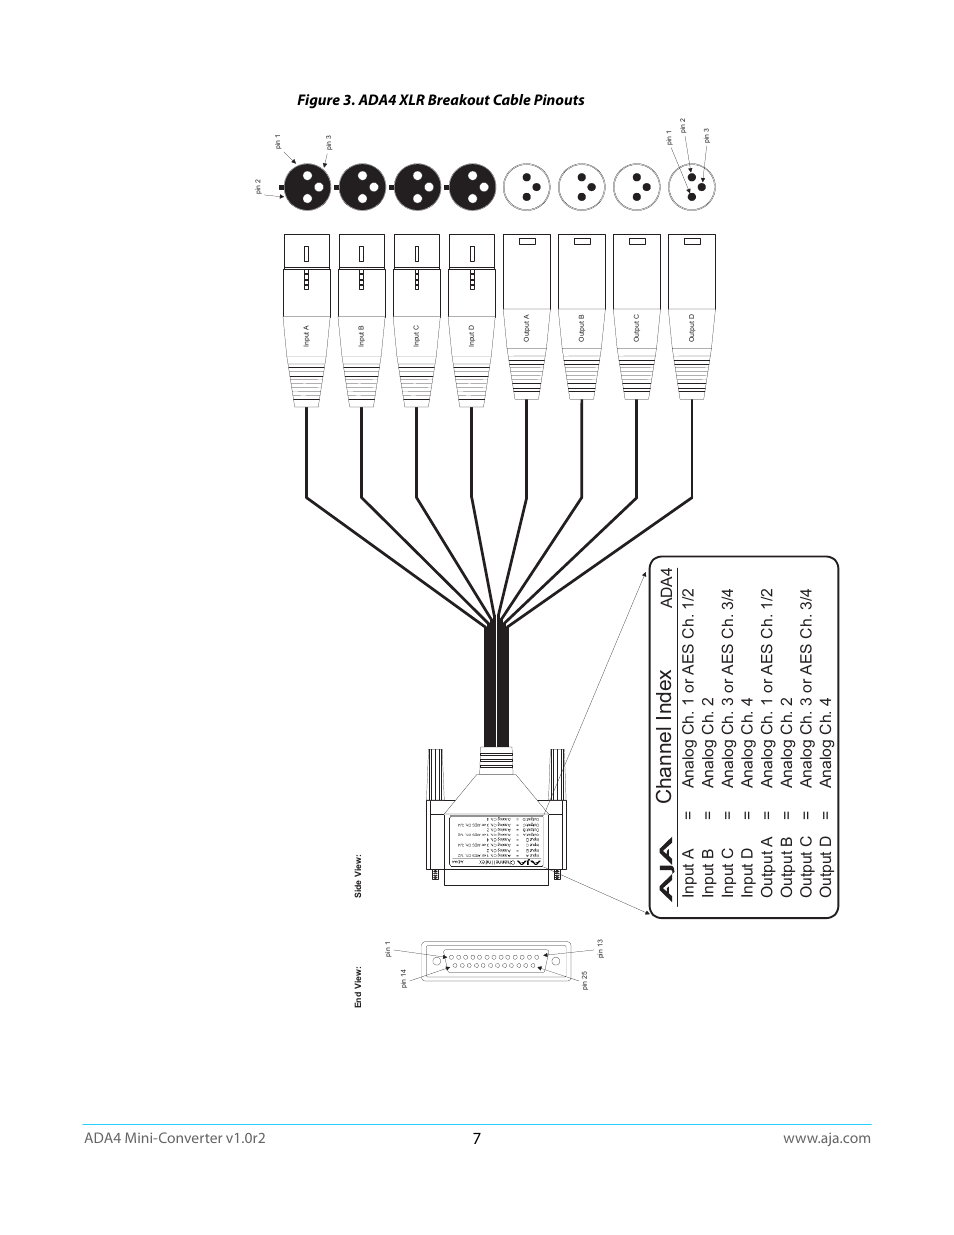 Channel i ndex, Figure 3. ada4 xlr breakout cable pinouts